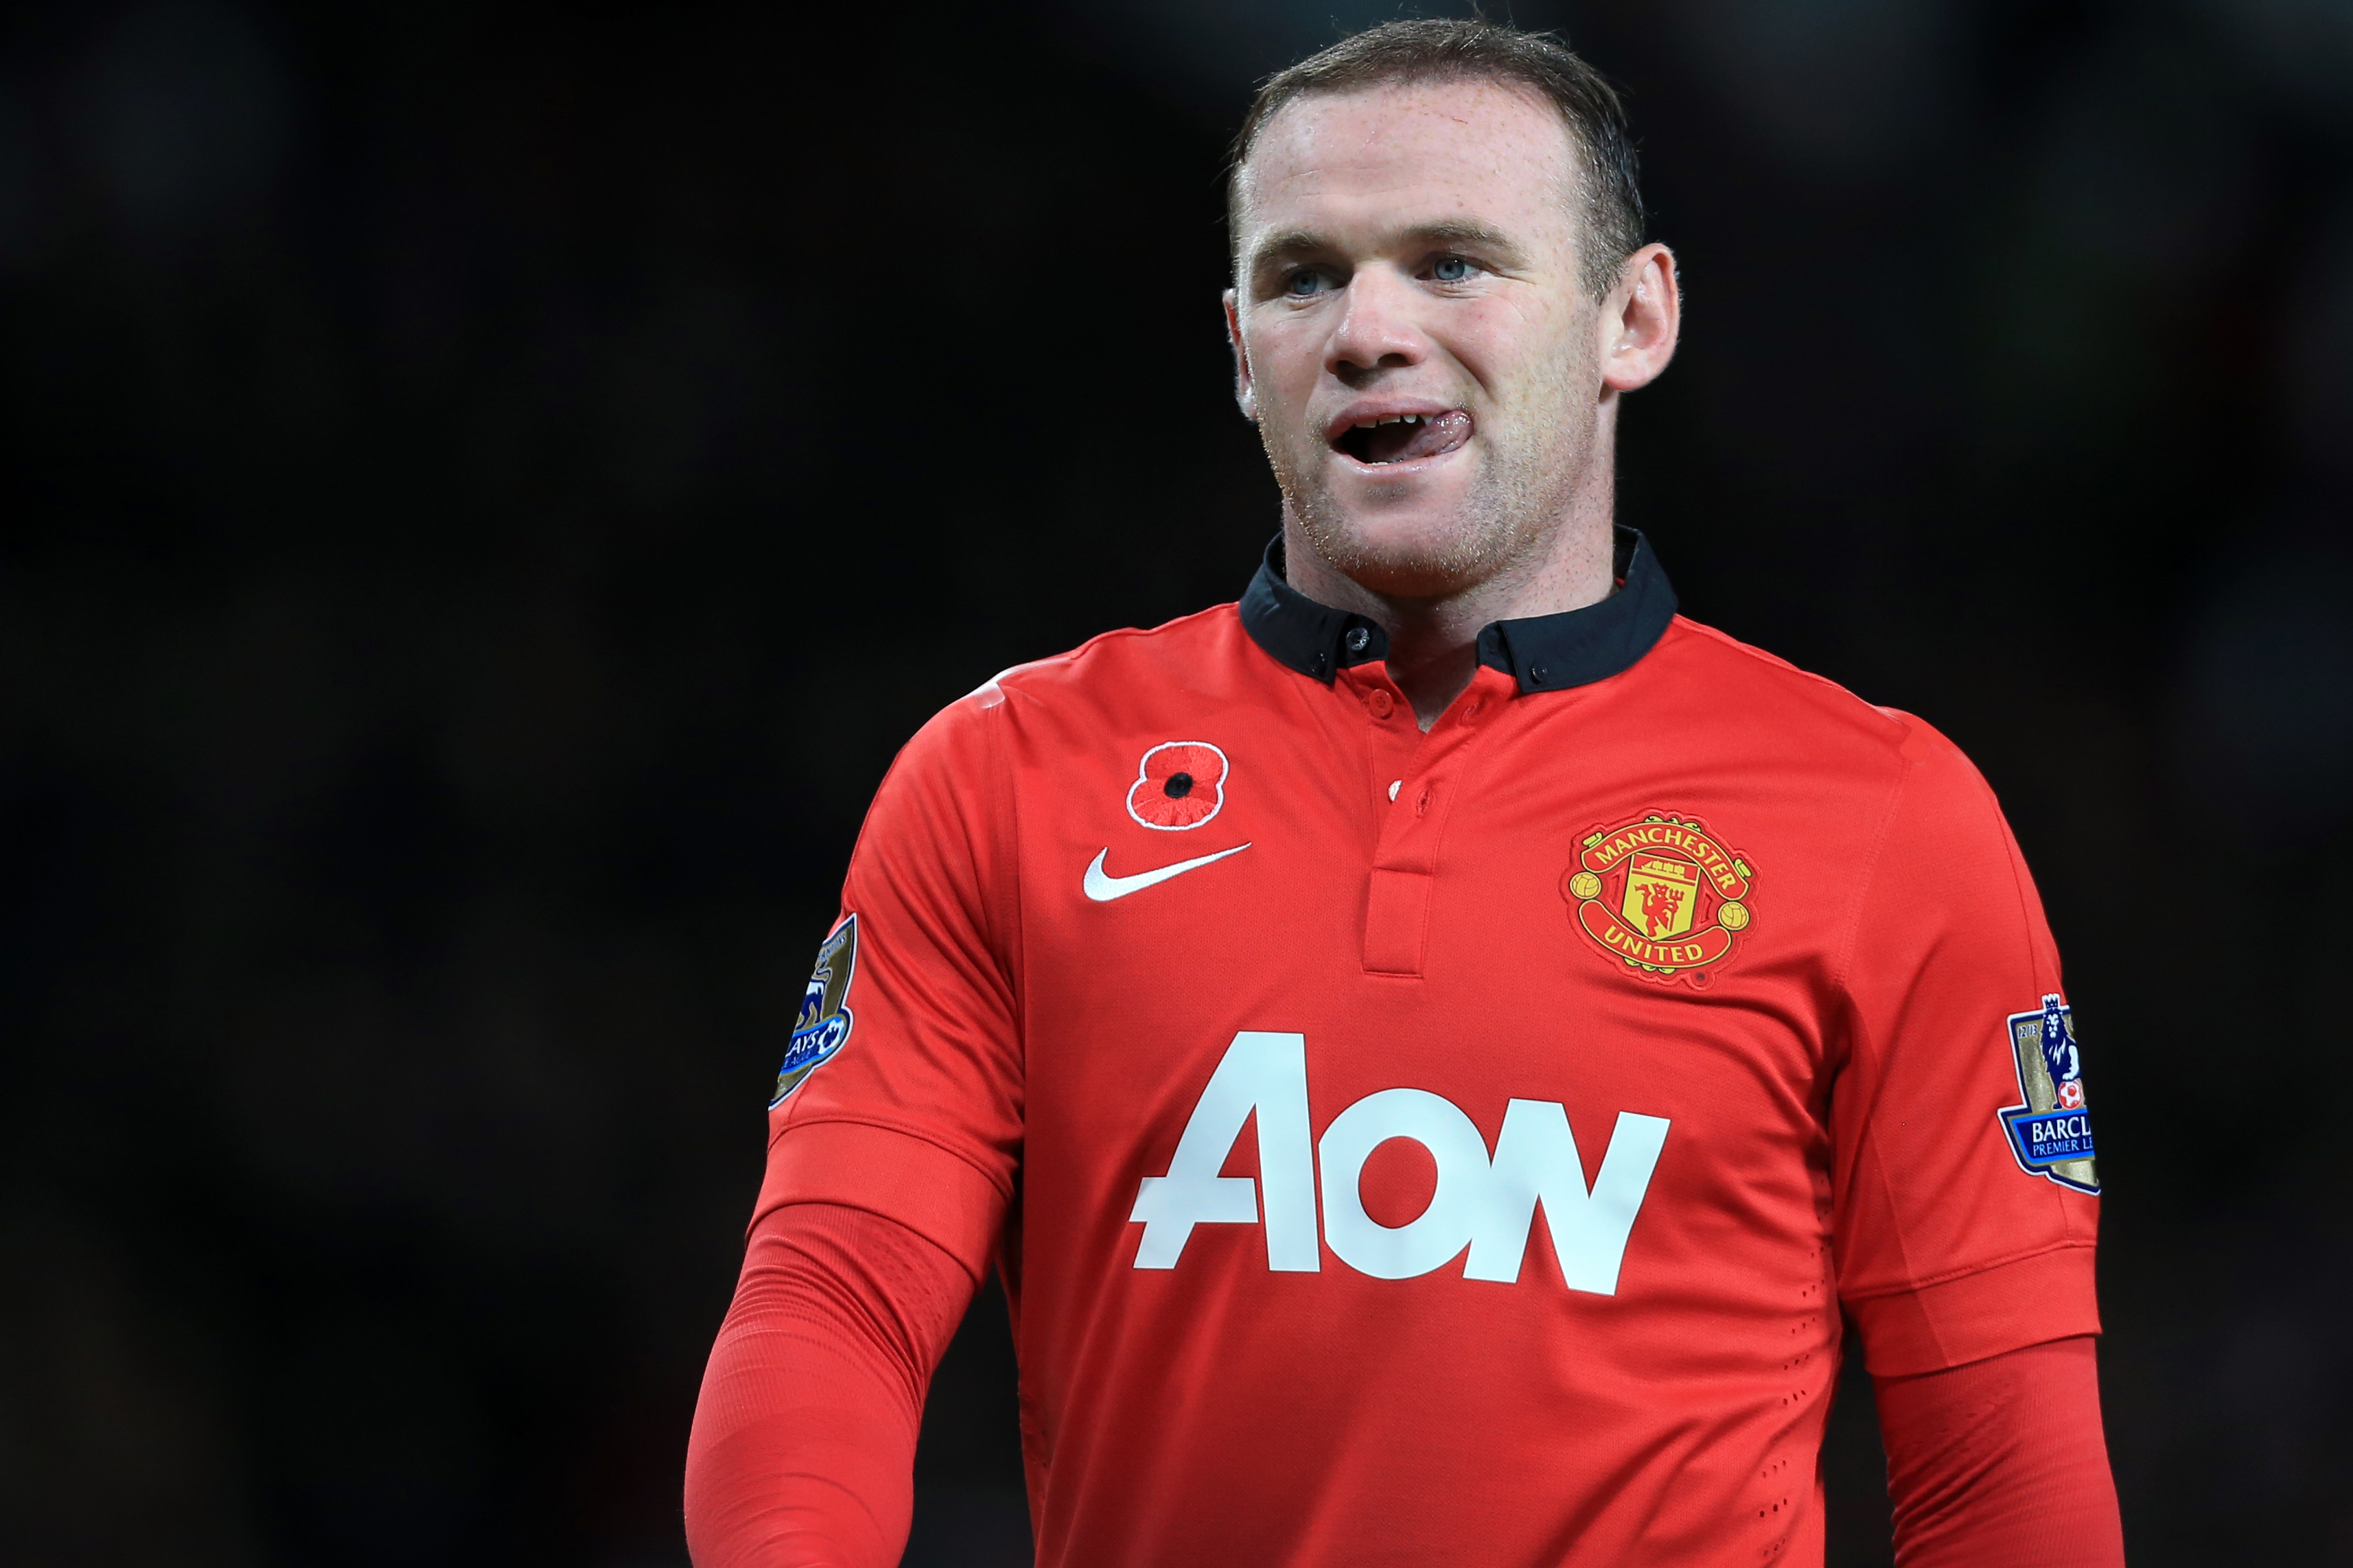 Wayne Rooney 18 Gallery Rooney on verge of new deal Sport News